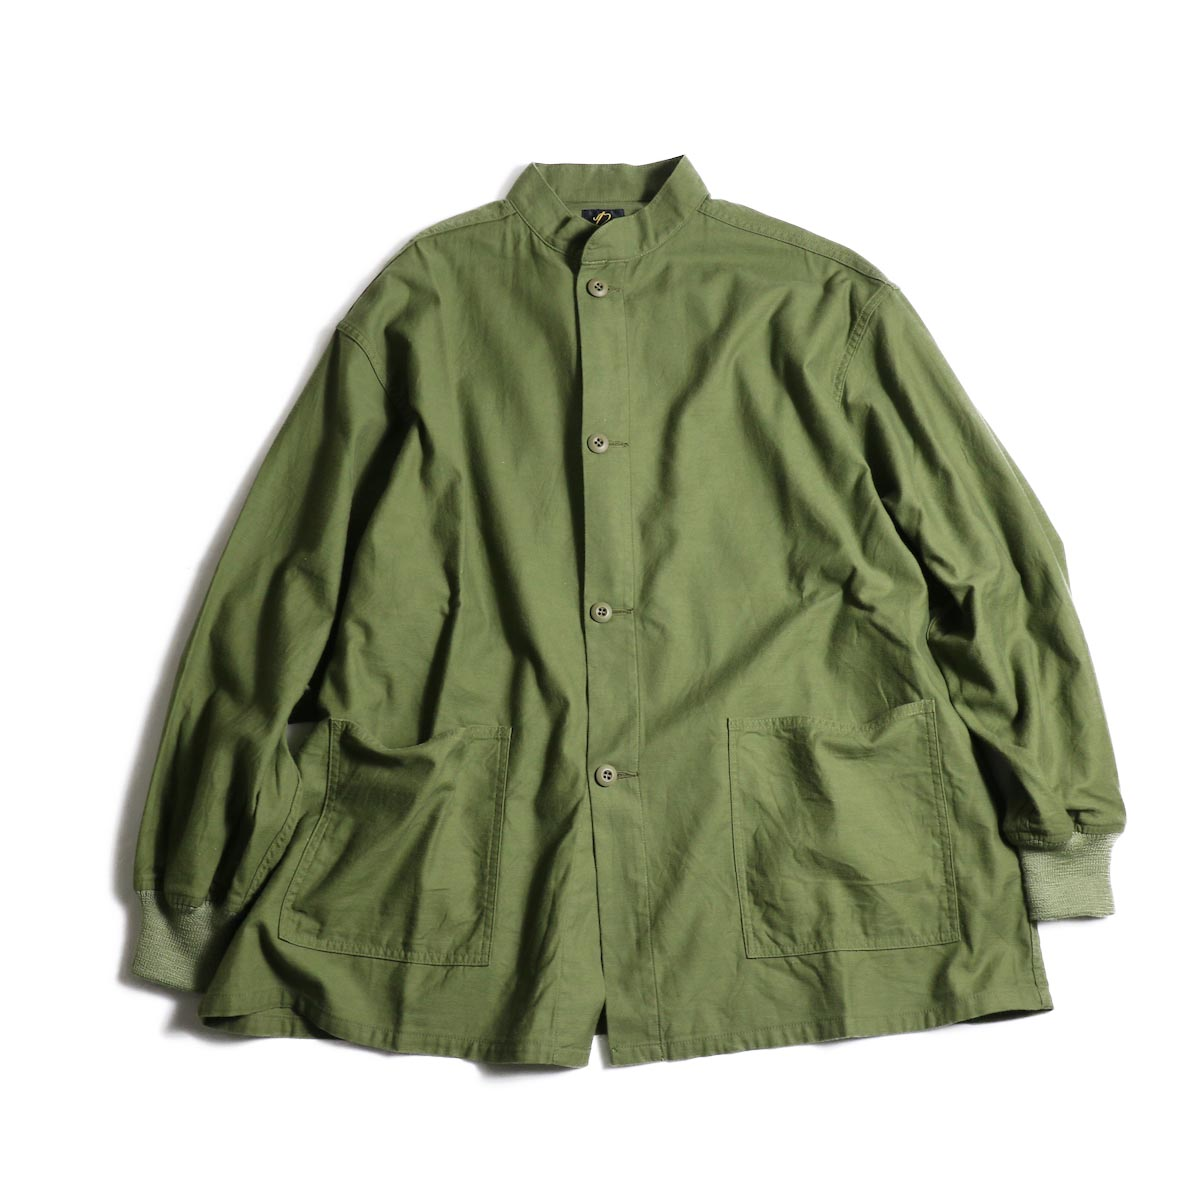 Needles / S.C. ARMY SHIRT - BACK SATEEN (Olive)